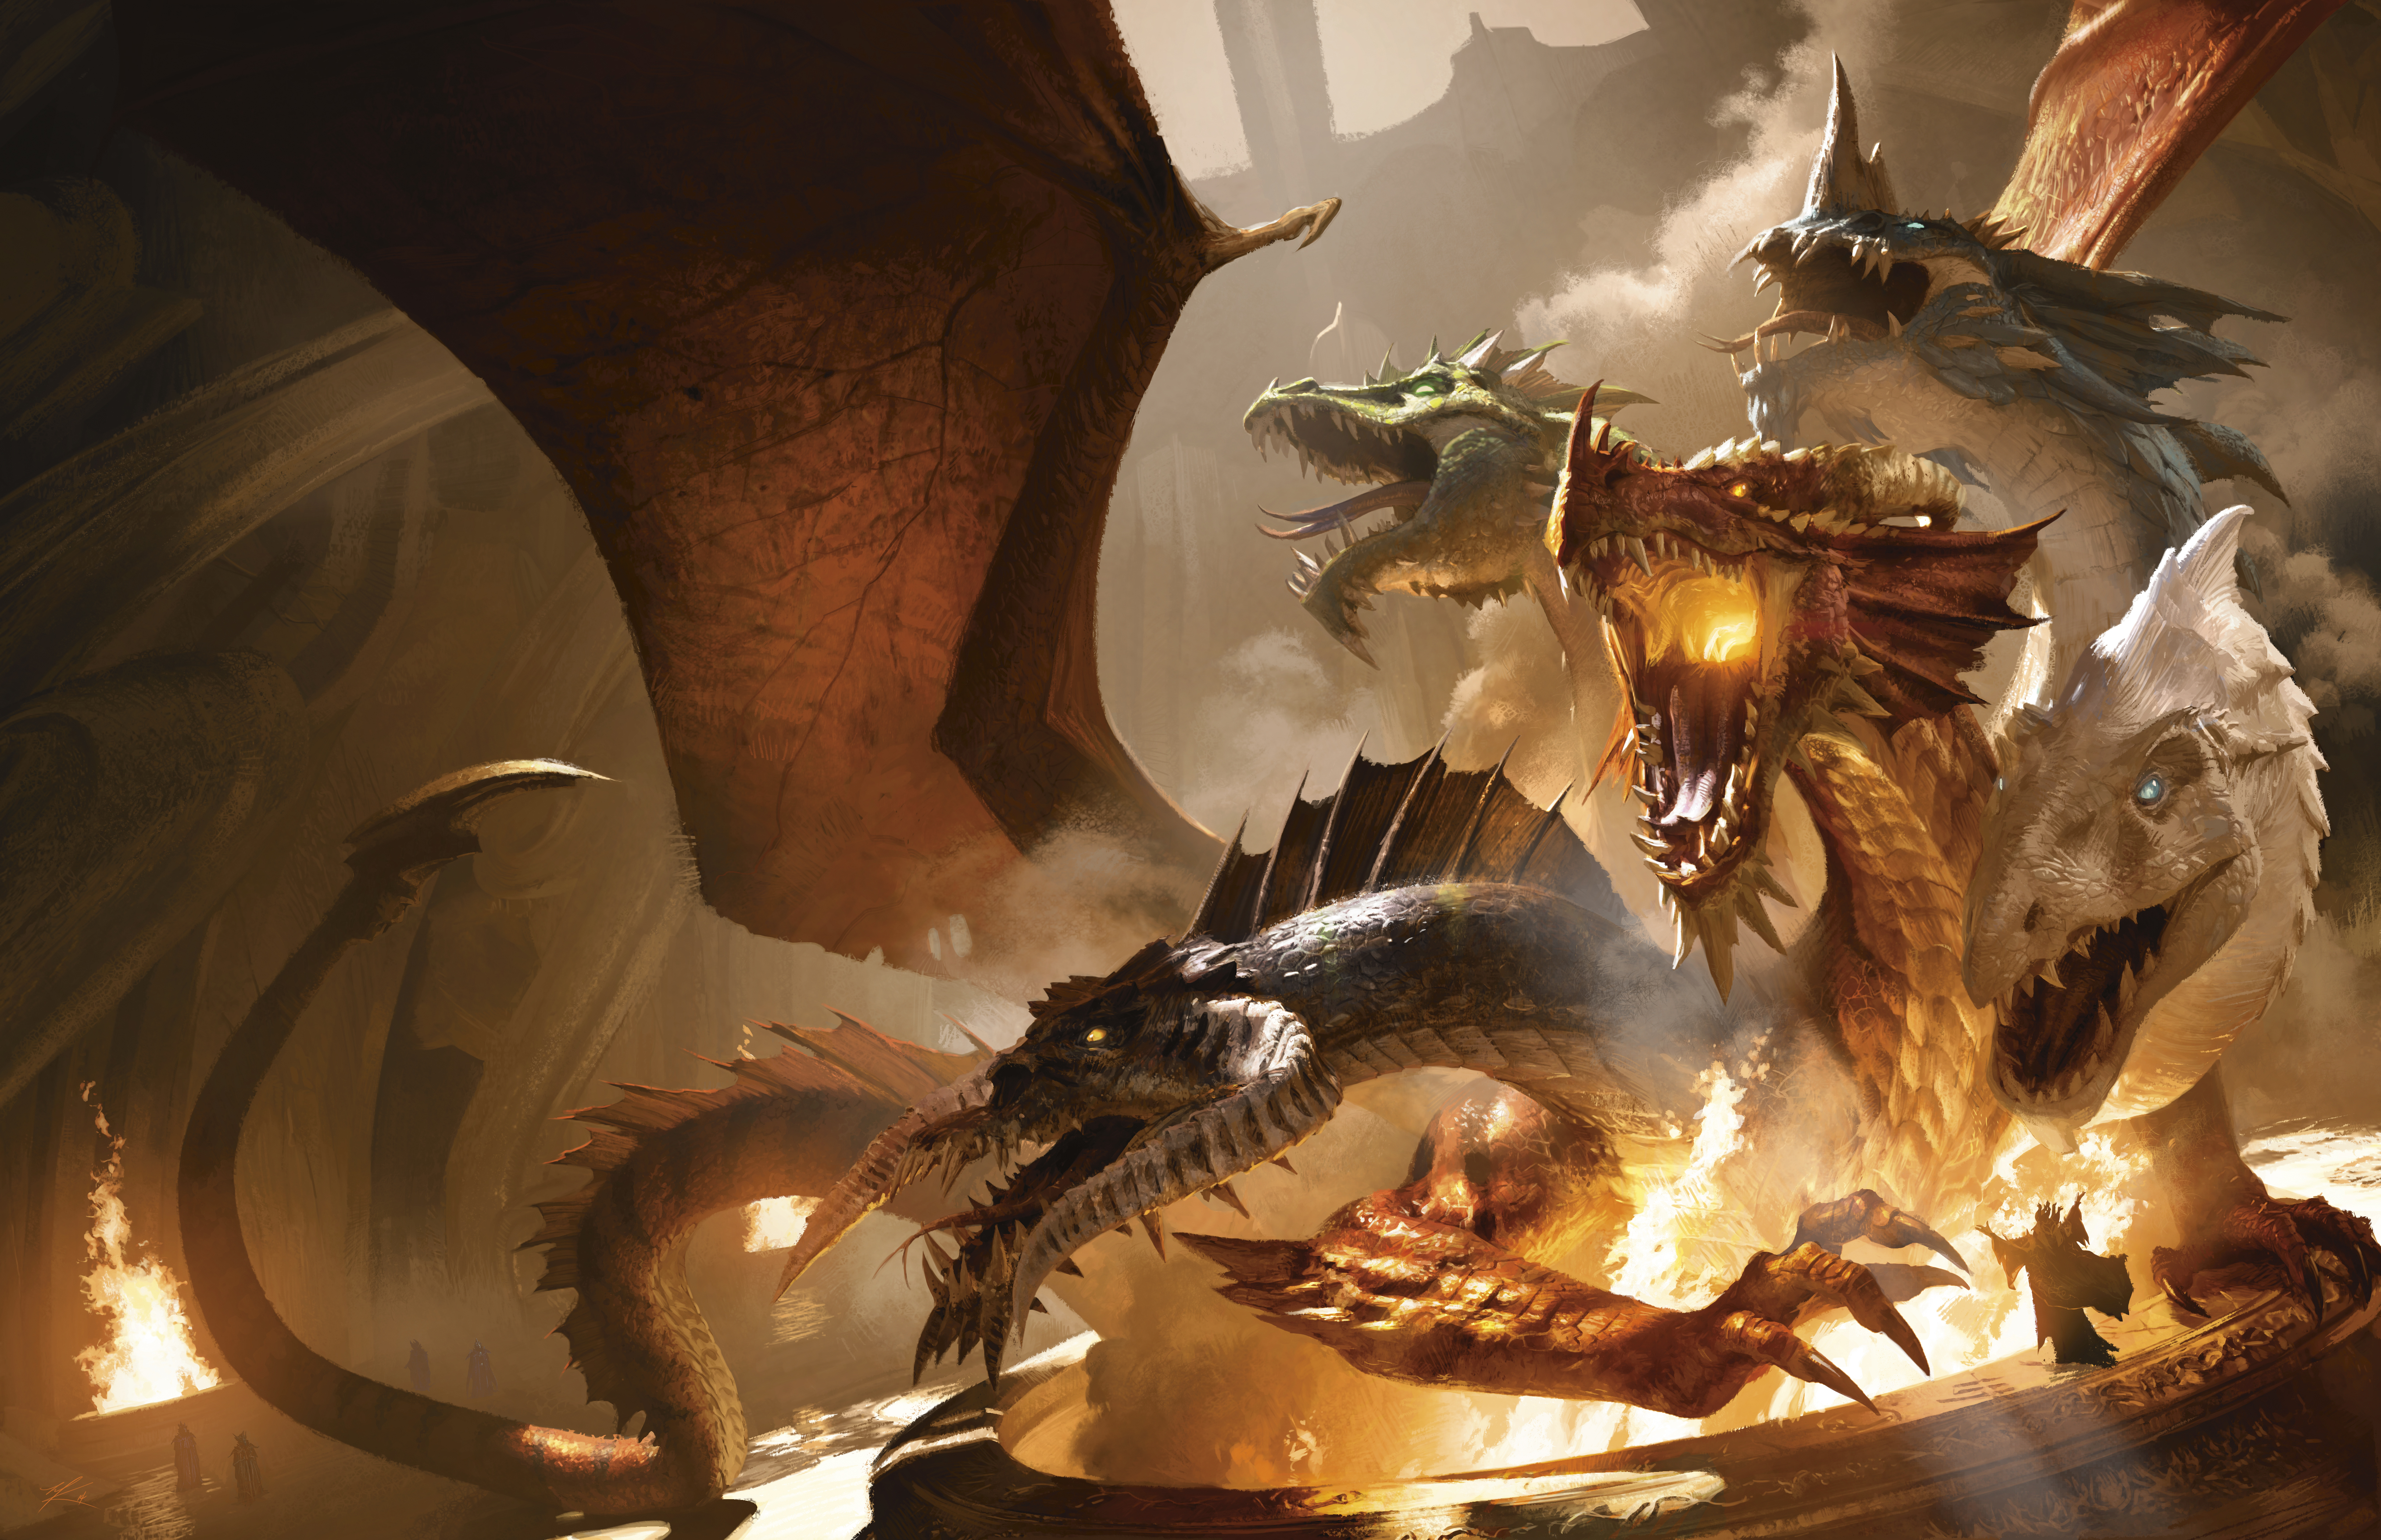 Dungeons & Dragons is booming online, but not in the way you think